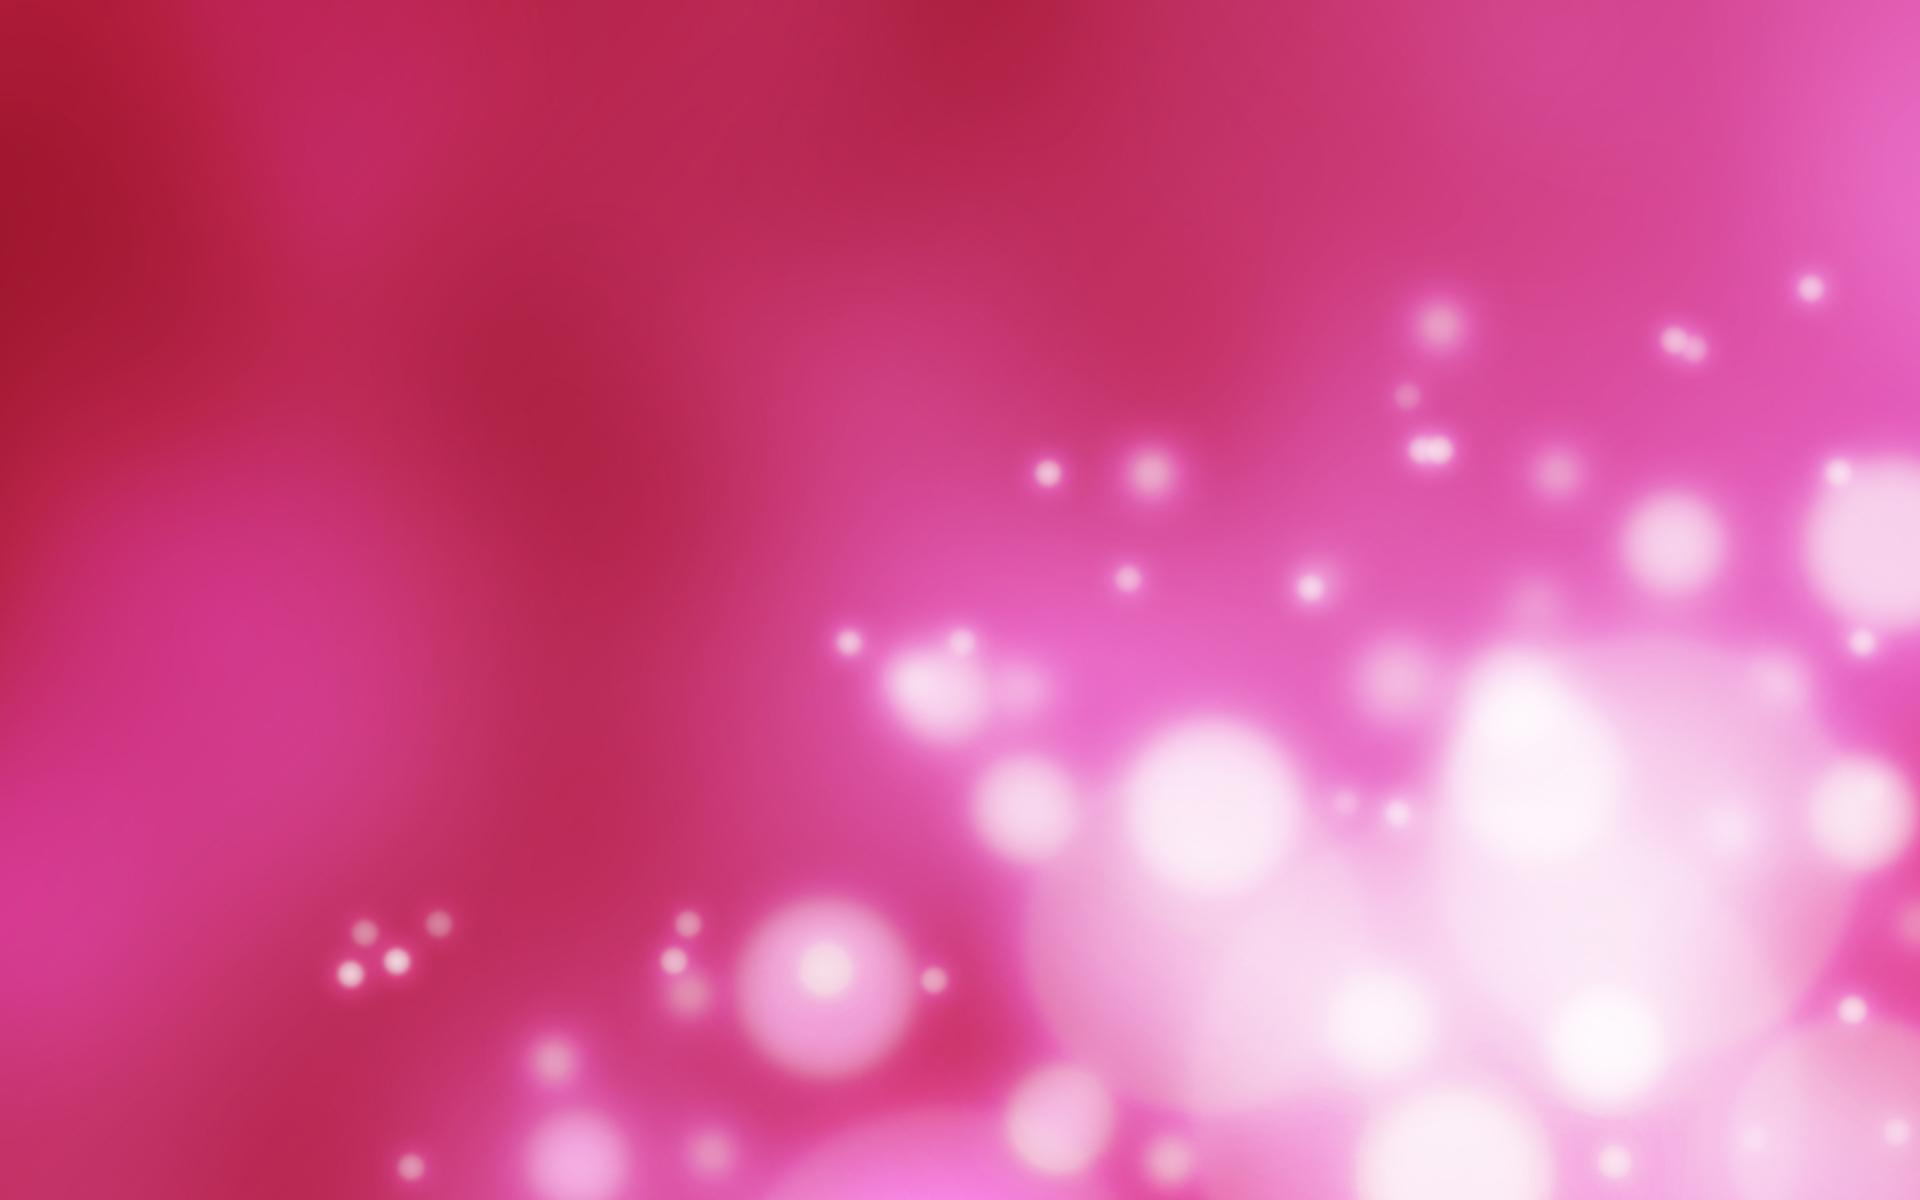 Pink background free download 6676 wallpaper walldiskpaper pink background free download voltagebd Choice Image